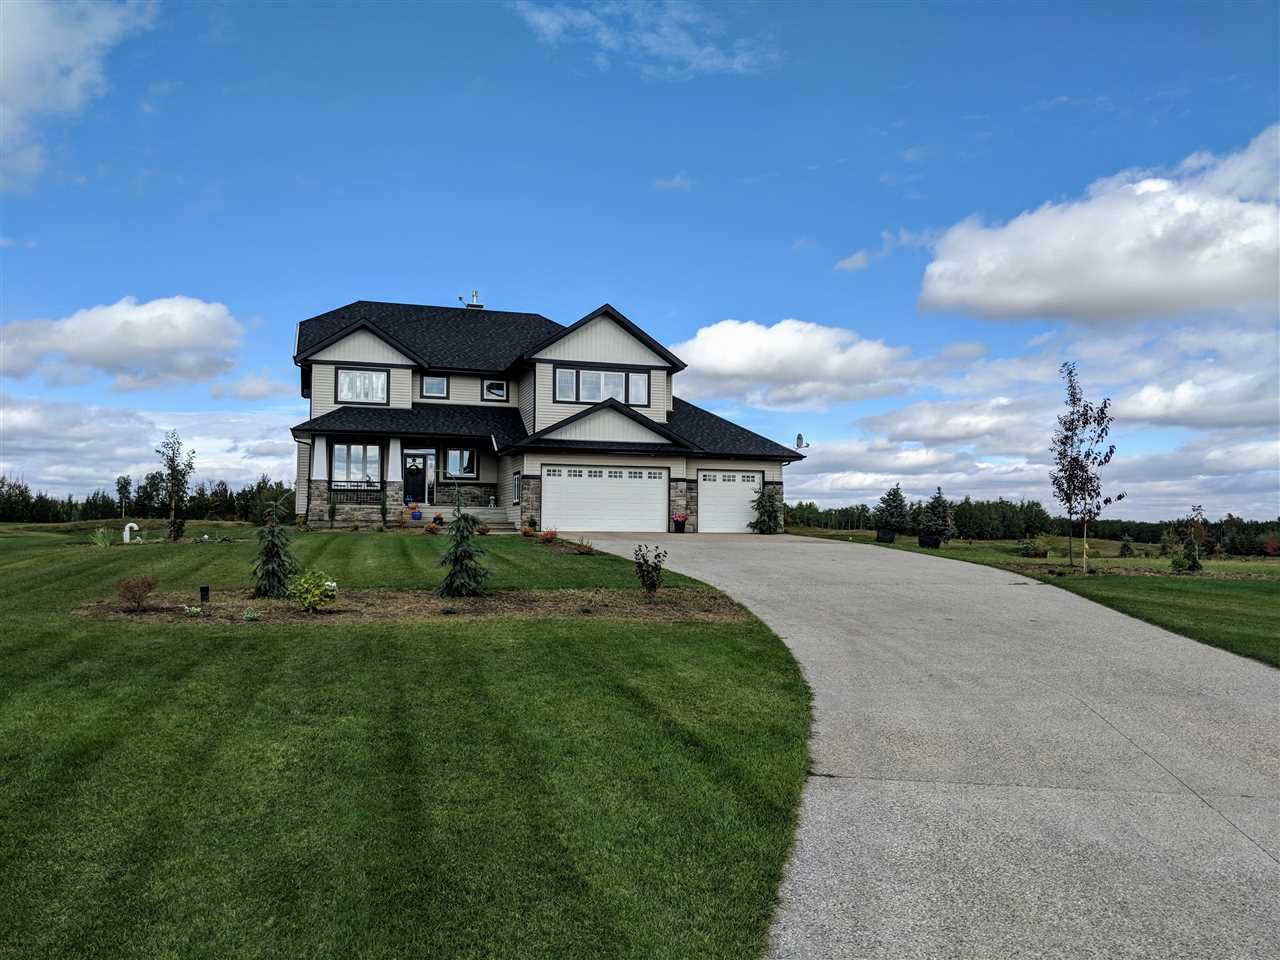 MLS® listing #E4107266 for sale located at 14 25515 TWP RD 511A Road